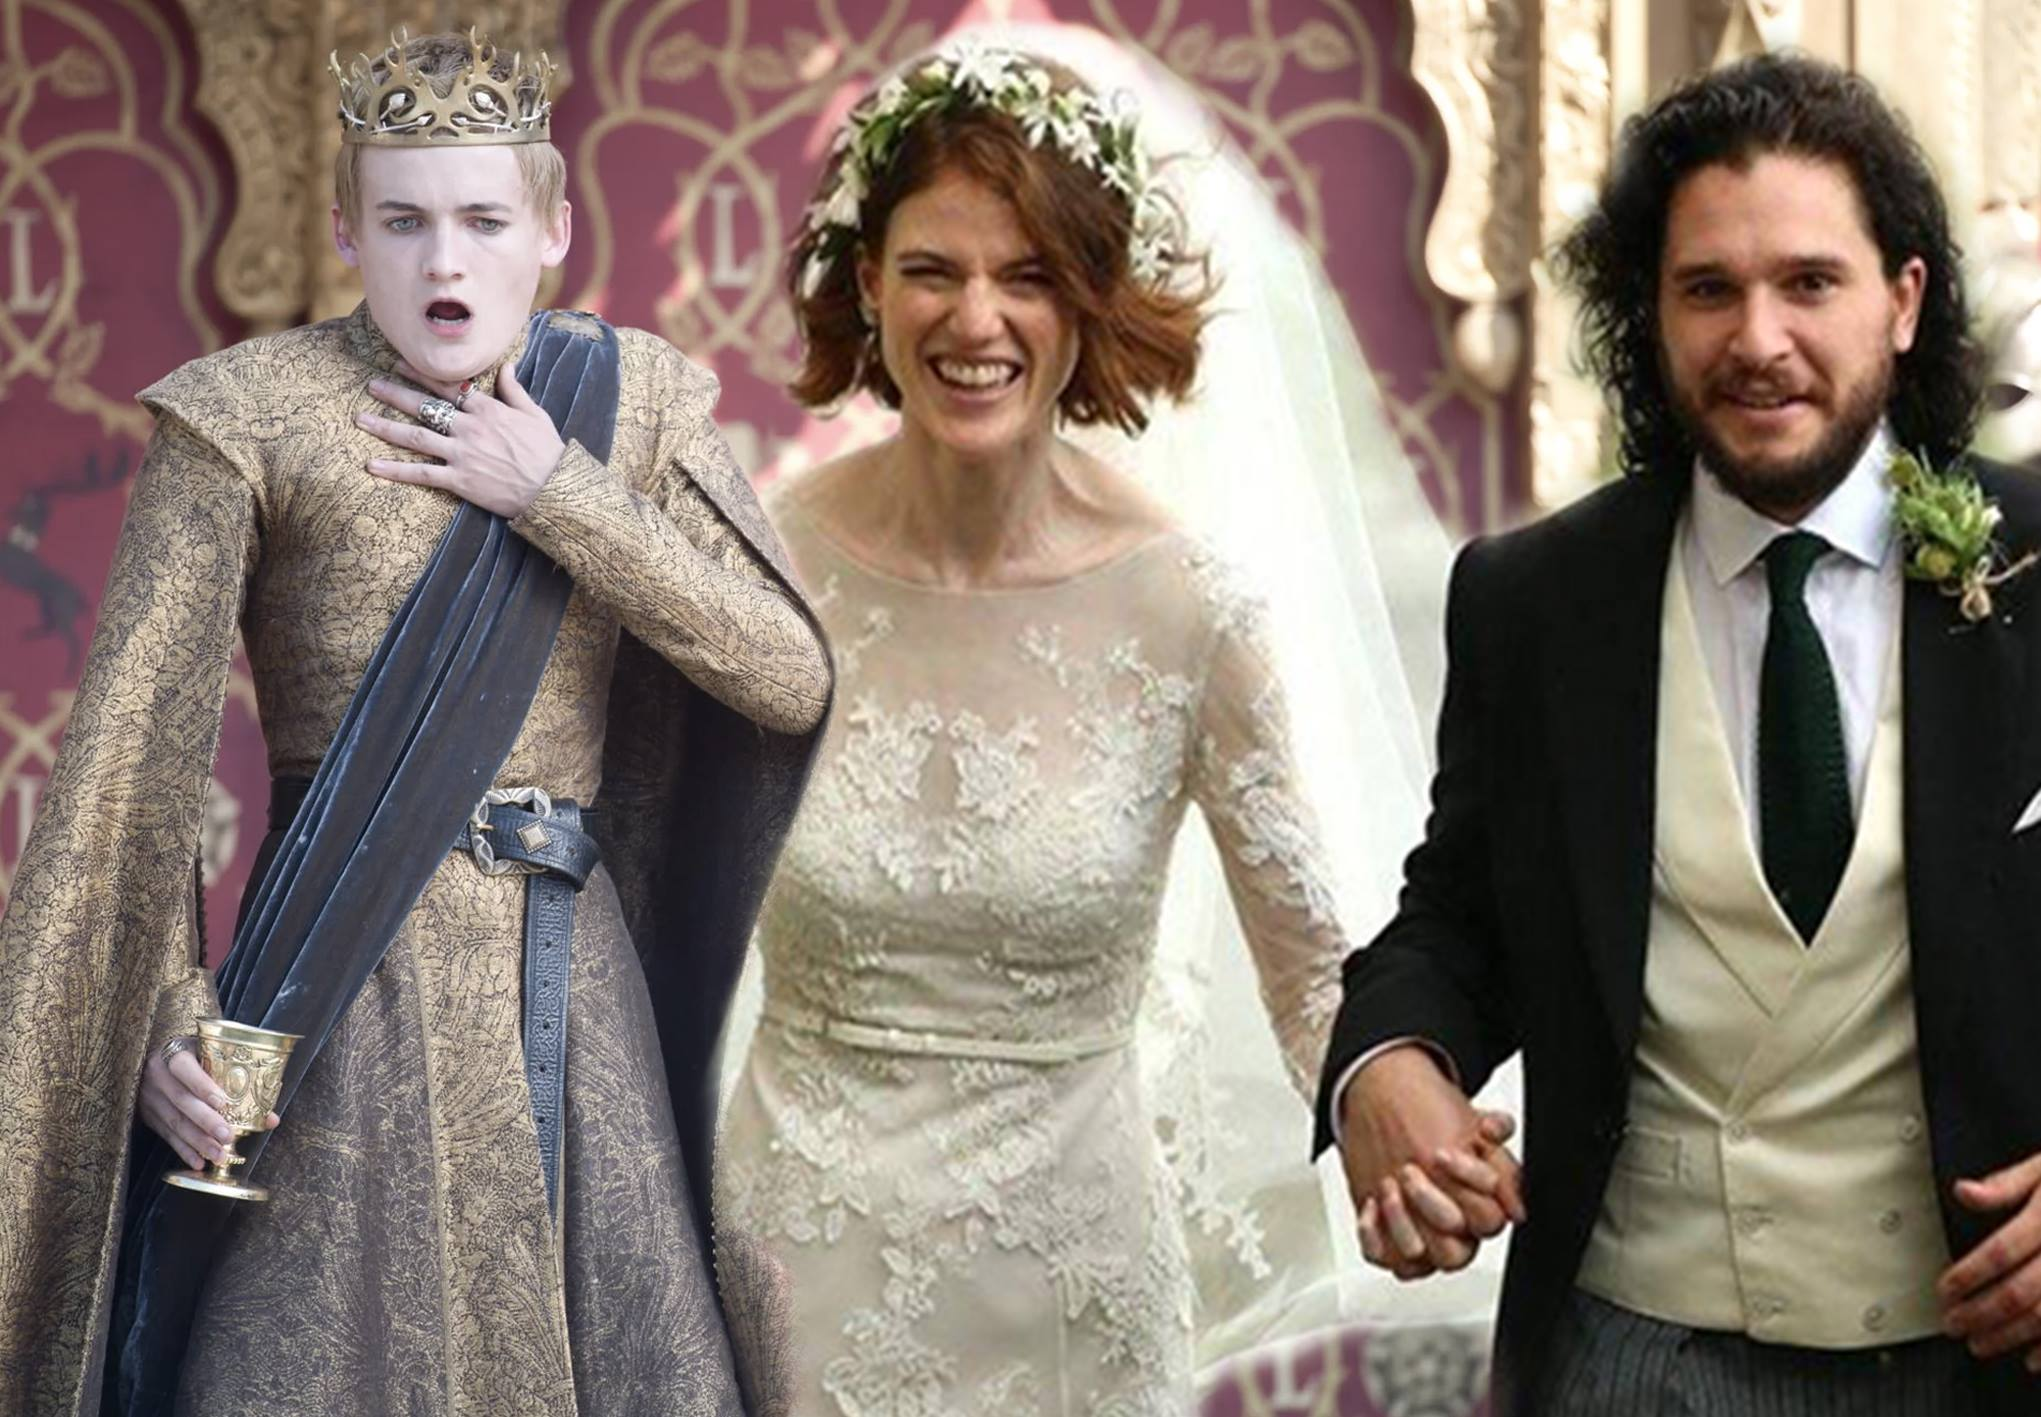 Kit Harington And Rose Leslie Wedding Pics Photoshopped Into Game Of